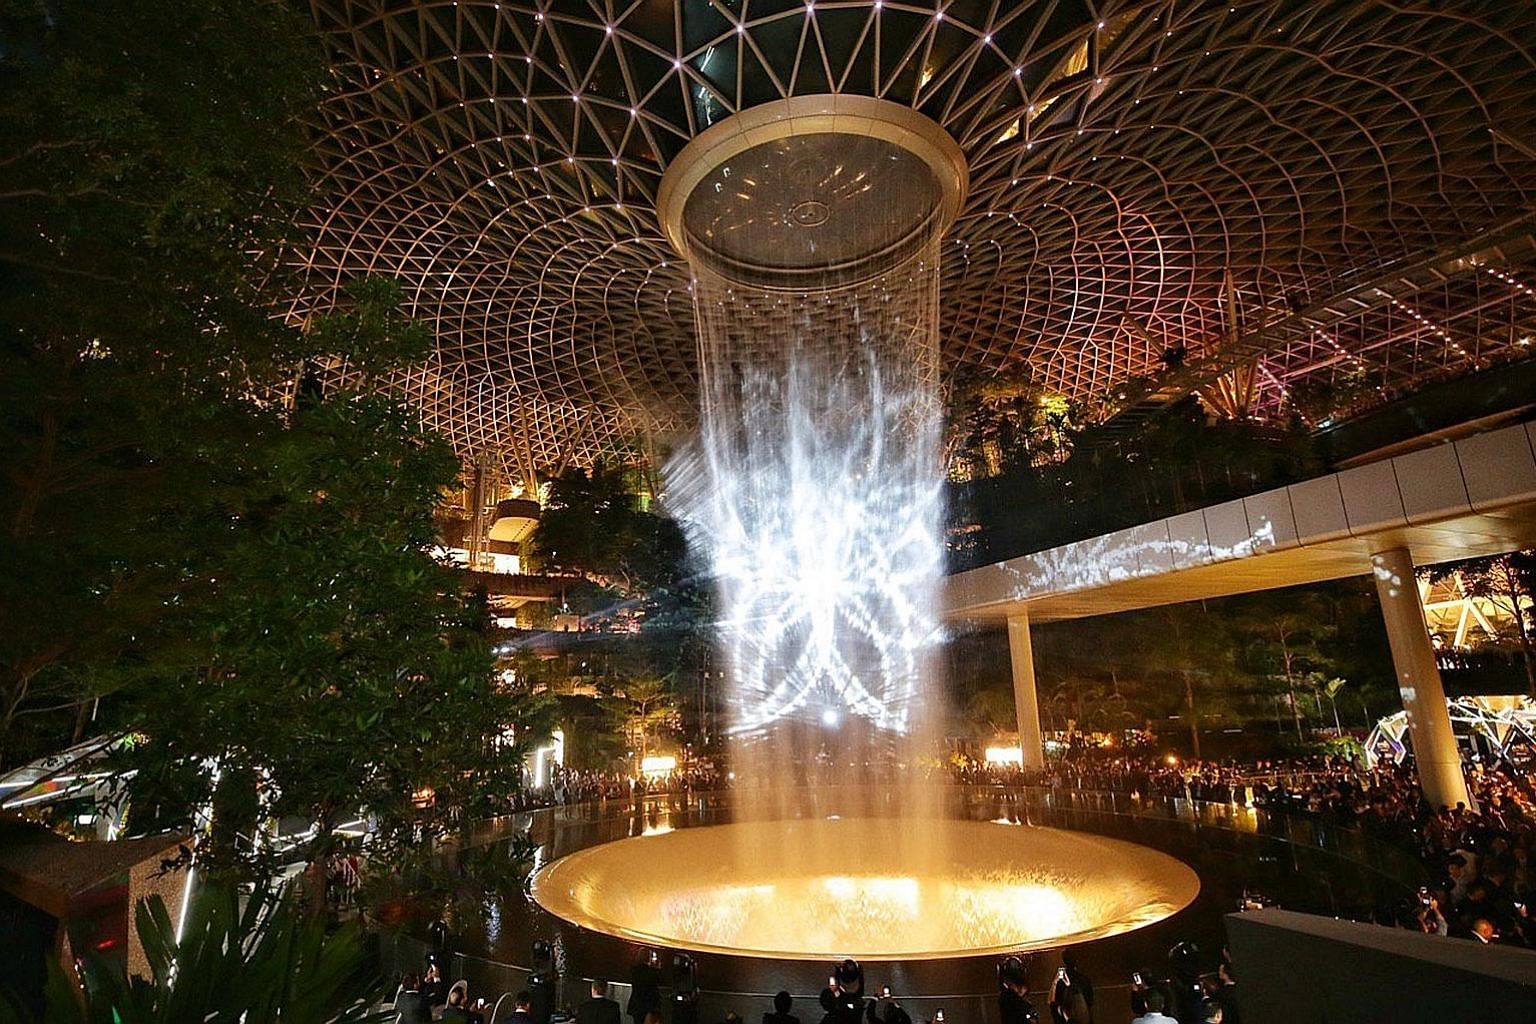 The new light and sound show at Jewel Changi Airport's 40m-high HSBC Rain Vortex is the third show at the indoor waterfall and is set to a new song, As I Believe, composed and sung by local Mandopop star JJ Lin. It made its debut around 7.30pm last n